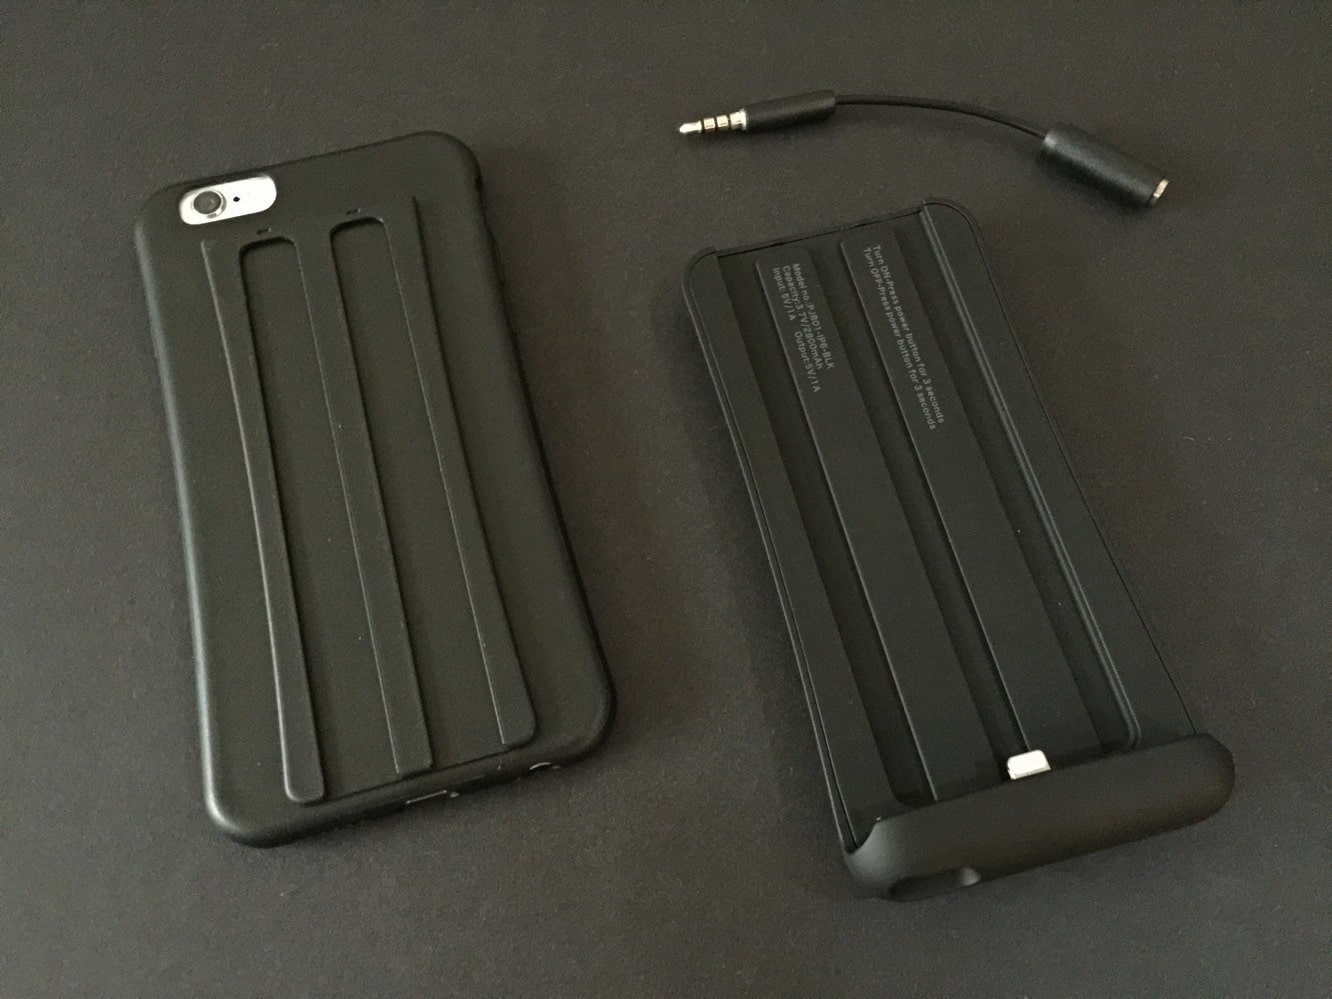 Review: Theo Power Jump + Power Jump Wireless for iPhone 6